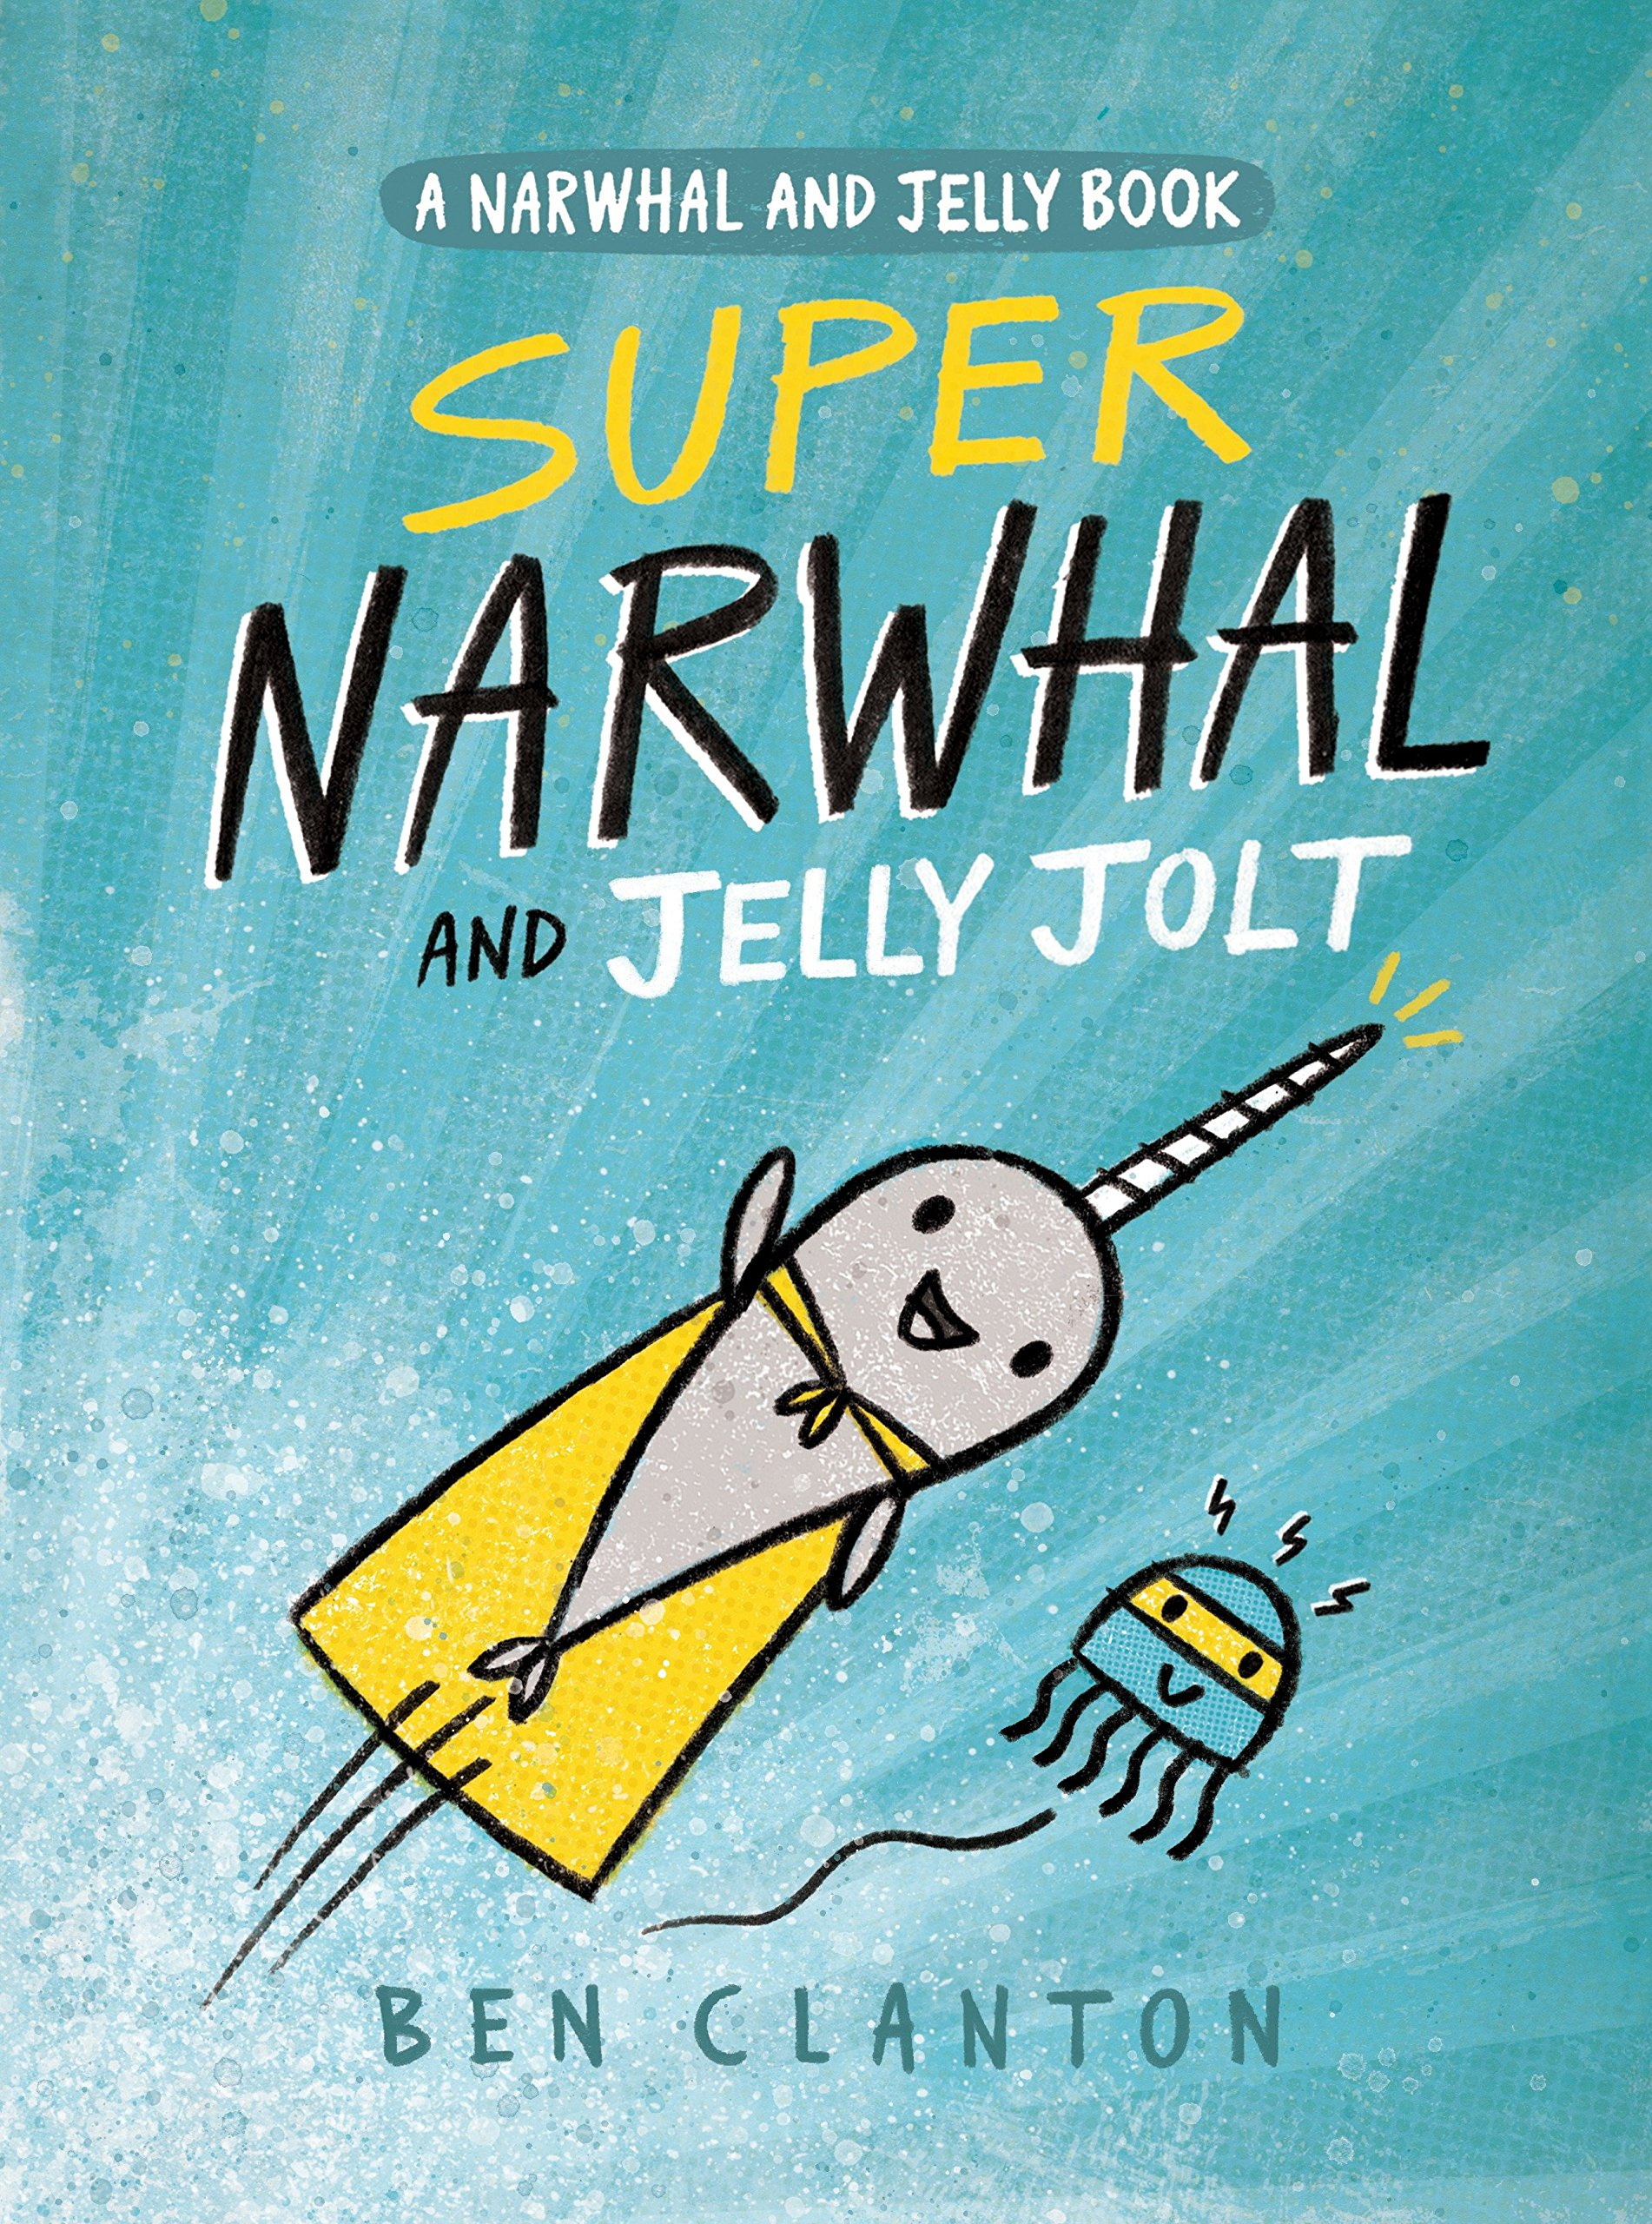 Super Narwhal and Jelly Jolt (A Narwhal and Jelly Book #2) by TUNDRA (Image #2)